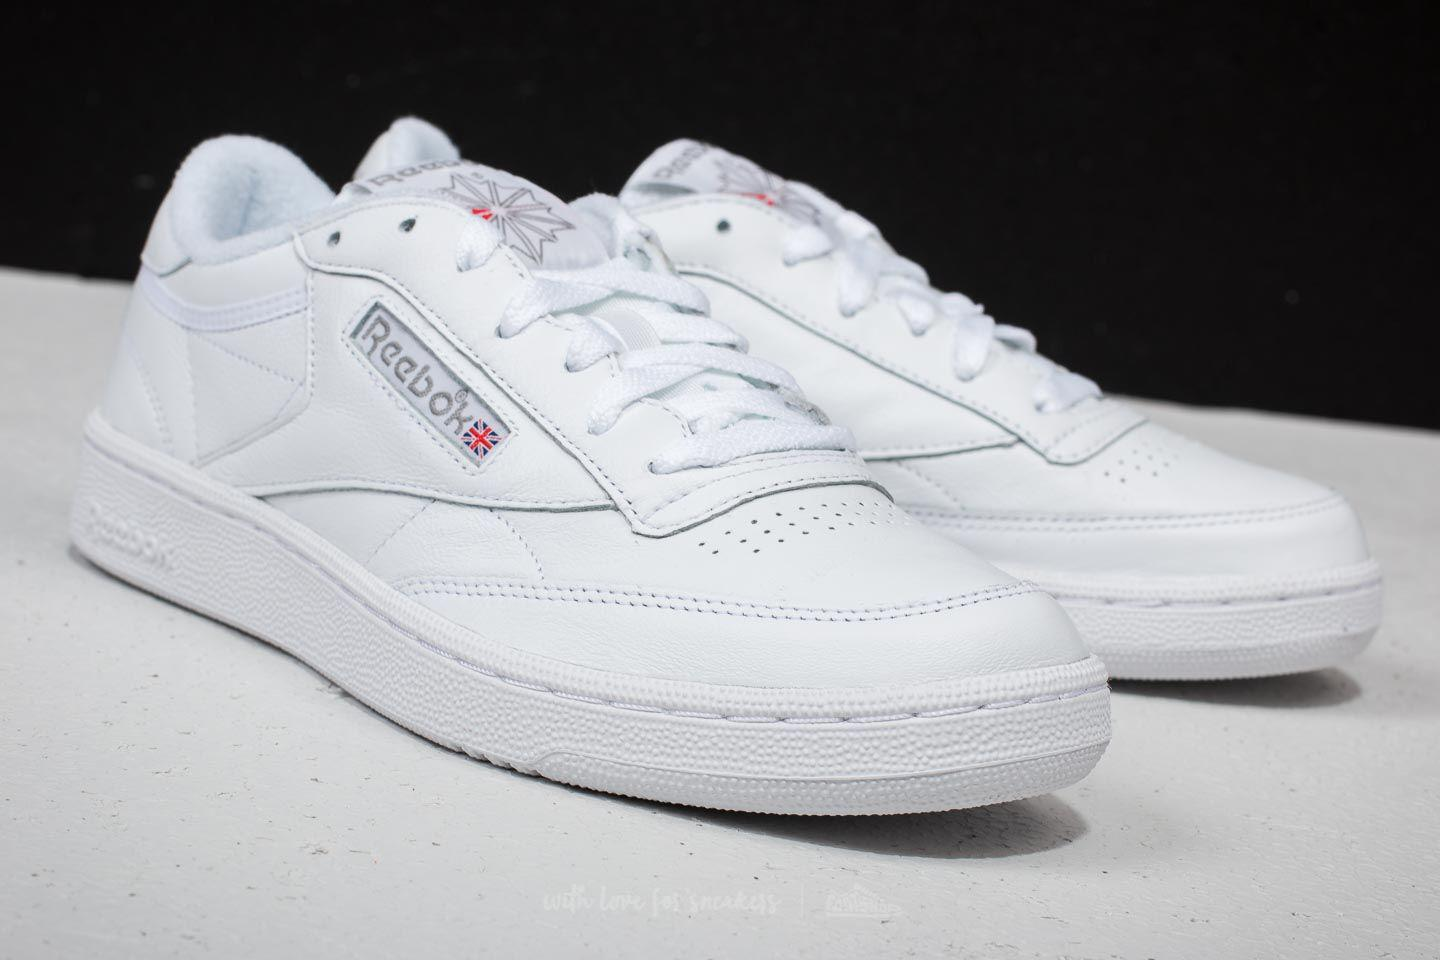 96aad61485694d Lyst - Reebok Reebok Club C 85 Archive White  Carbon  Excellent Red ...